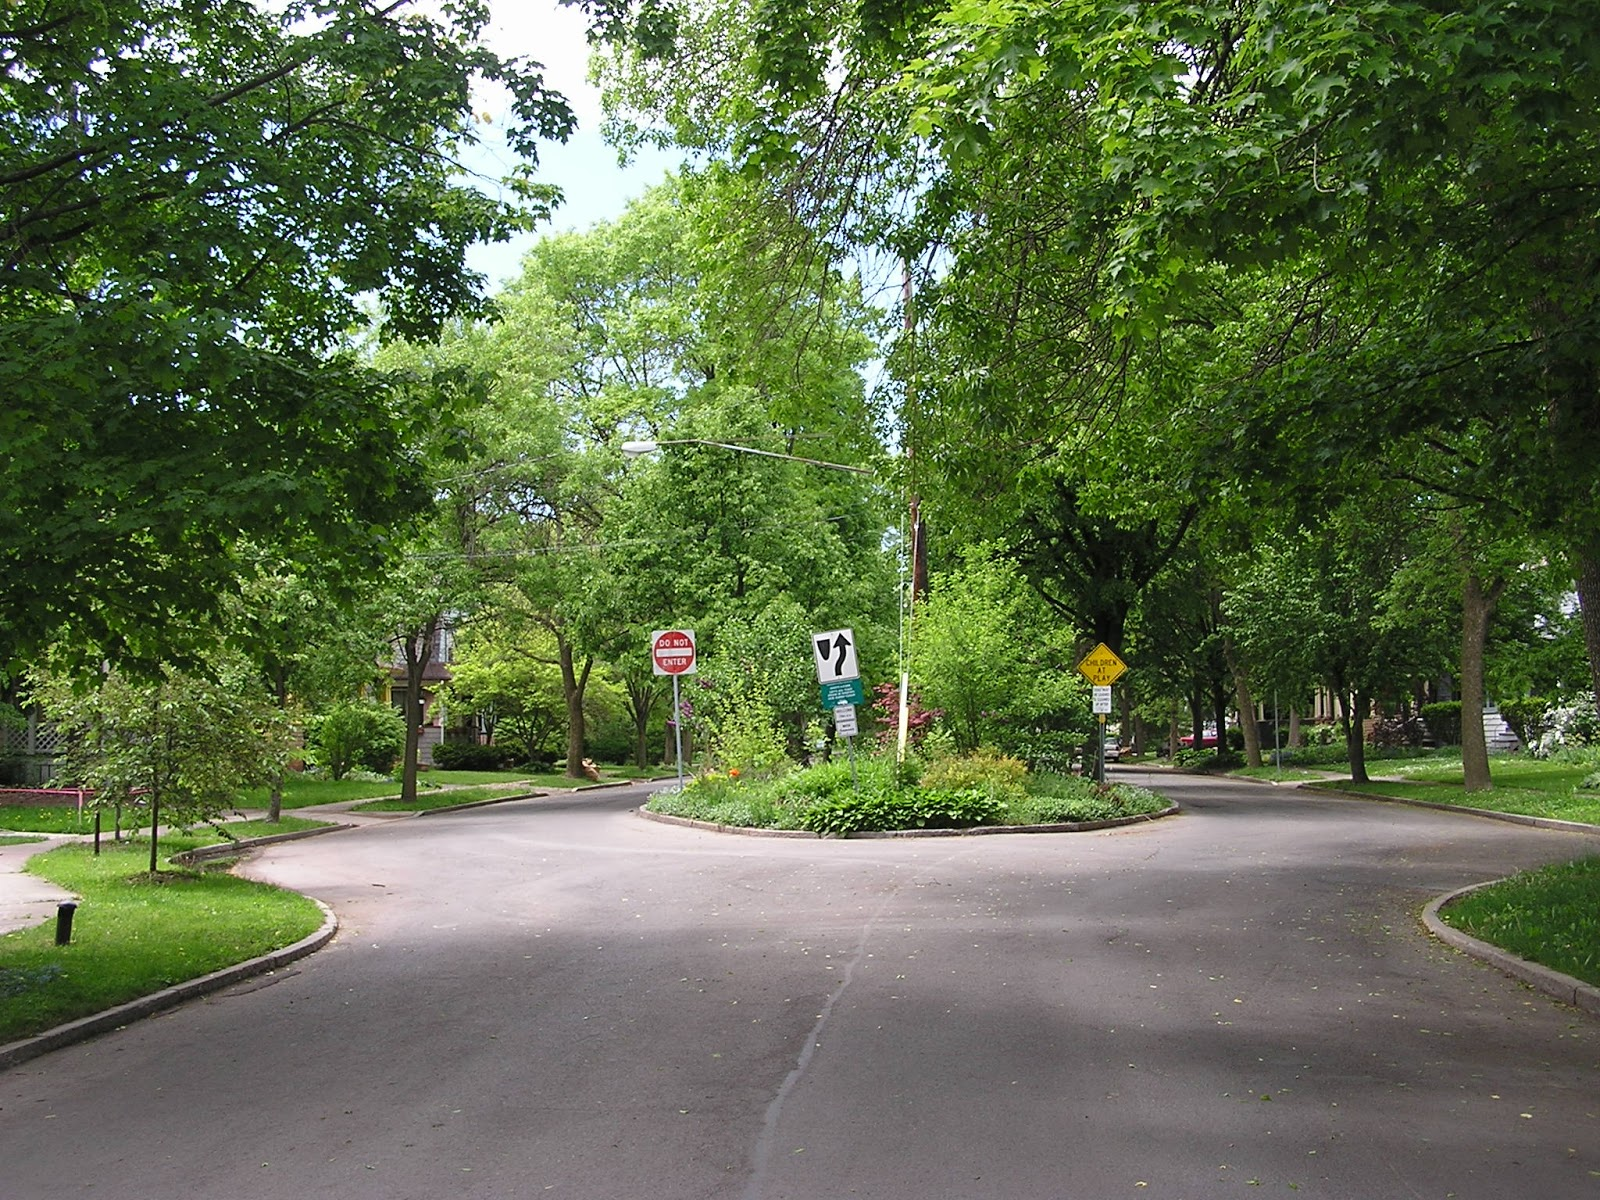 Concord Place Westcott Neighborhood S Village Green